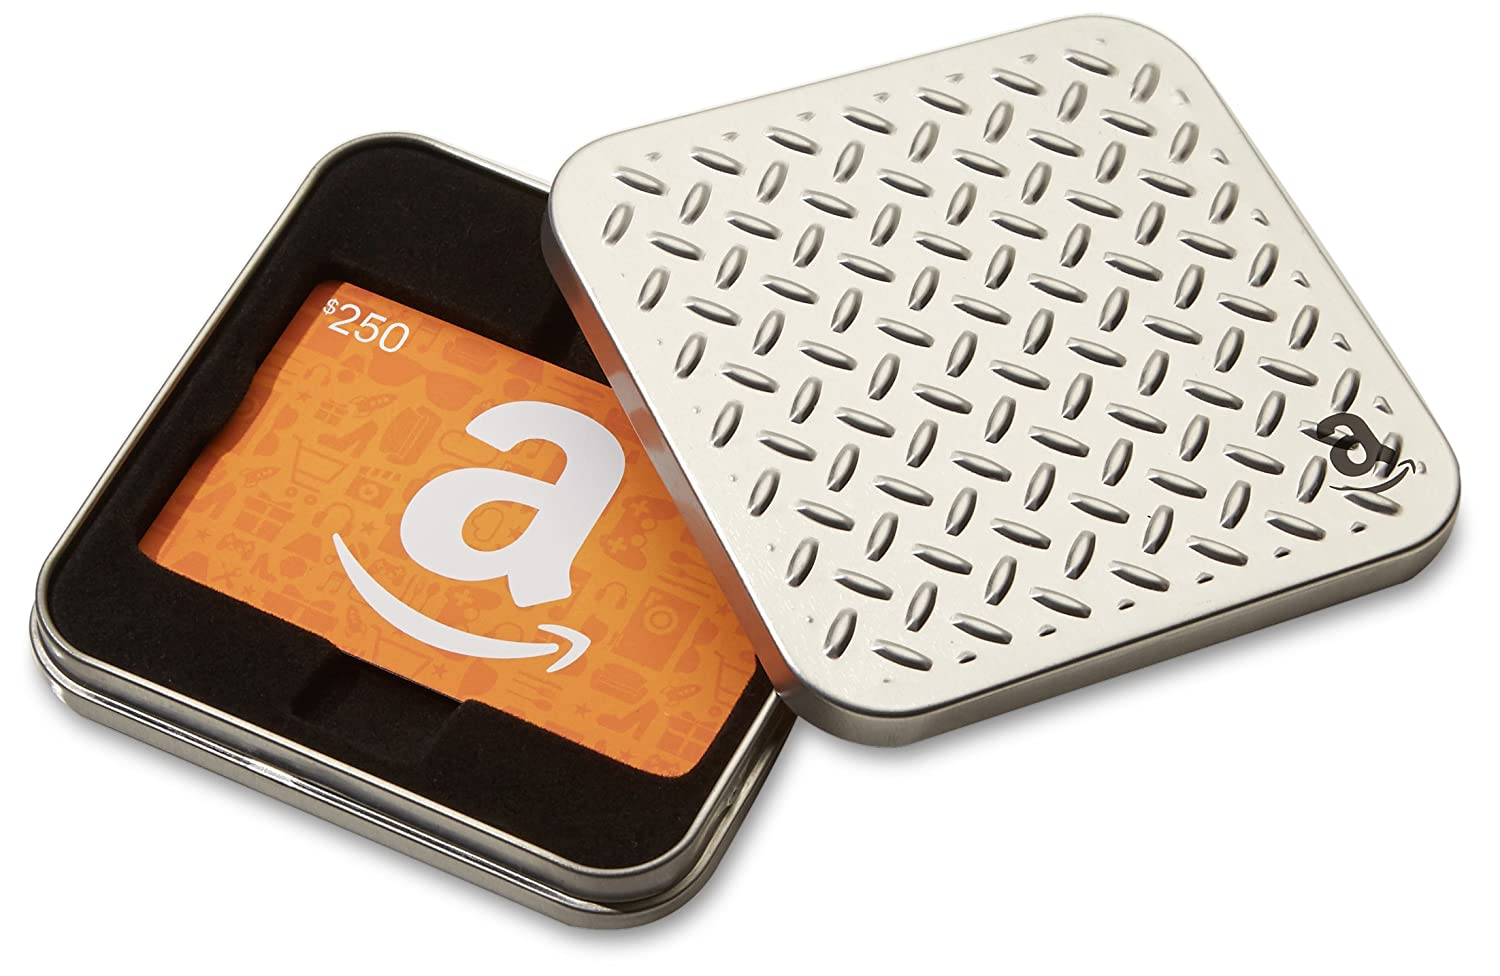 Amazon.ca Gift Card in a Diamond Plate Tin (Classic Amazon Icons Card Design)